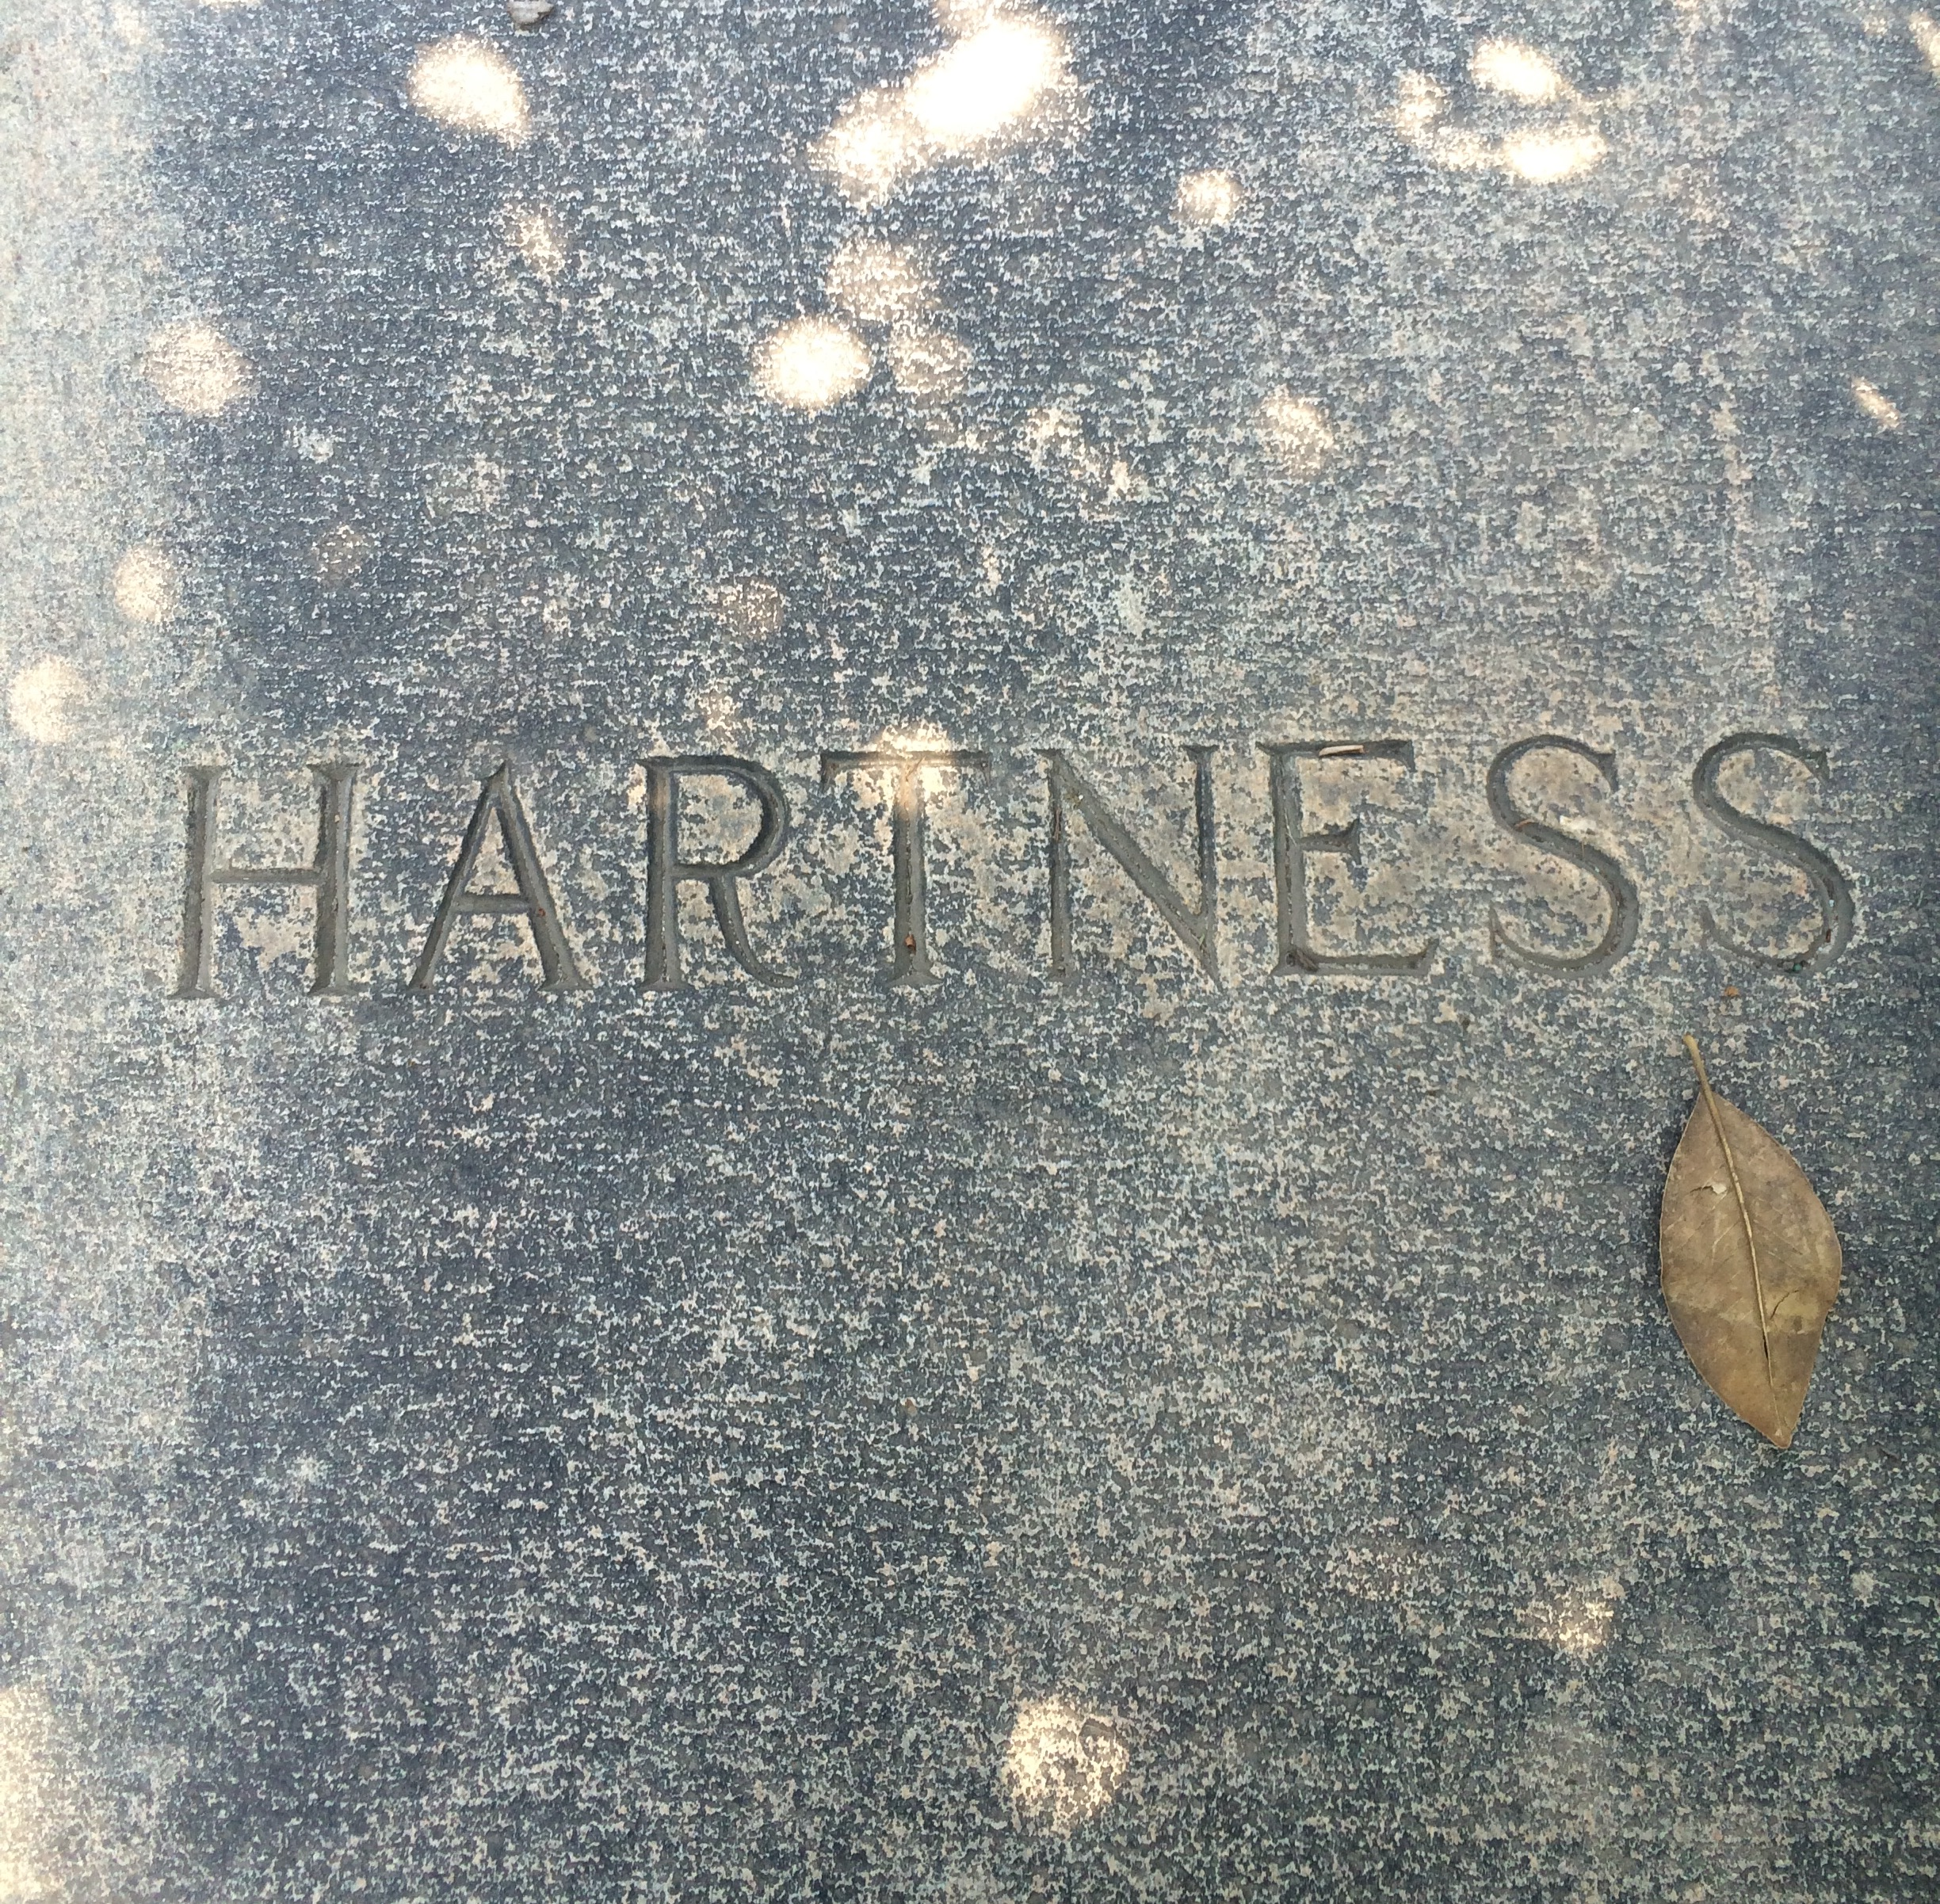 """The name """"Hartness"""" is inscribed in the sidewalk directly in front of this house. This must have been added sometime between 1928 and 1969."""